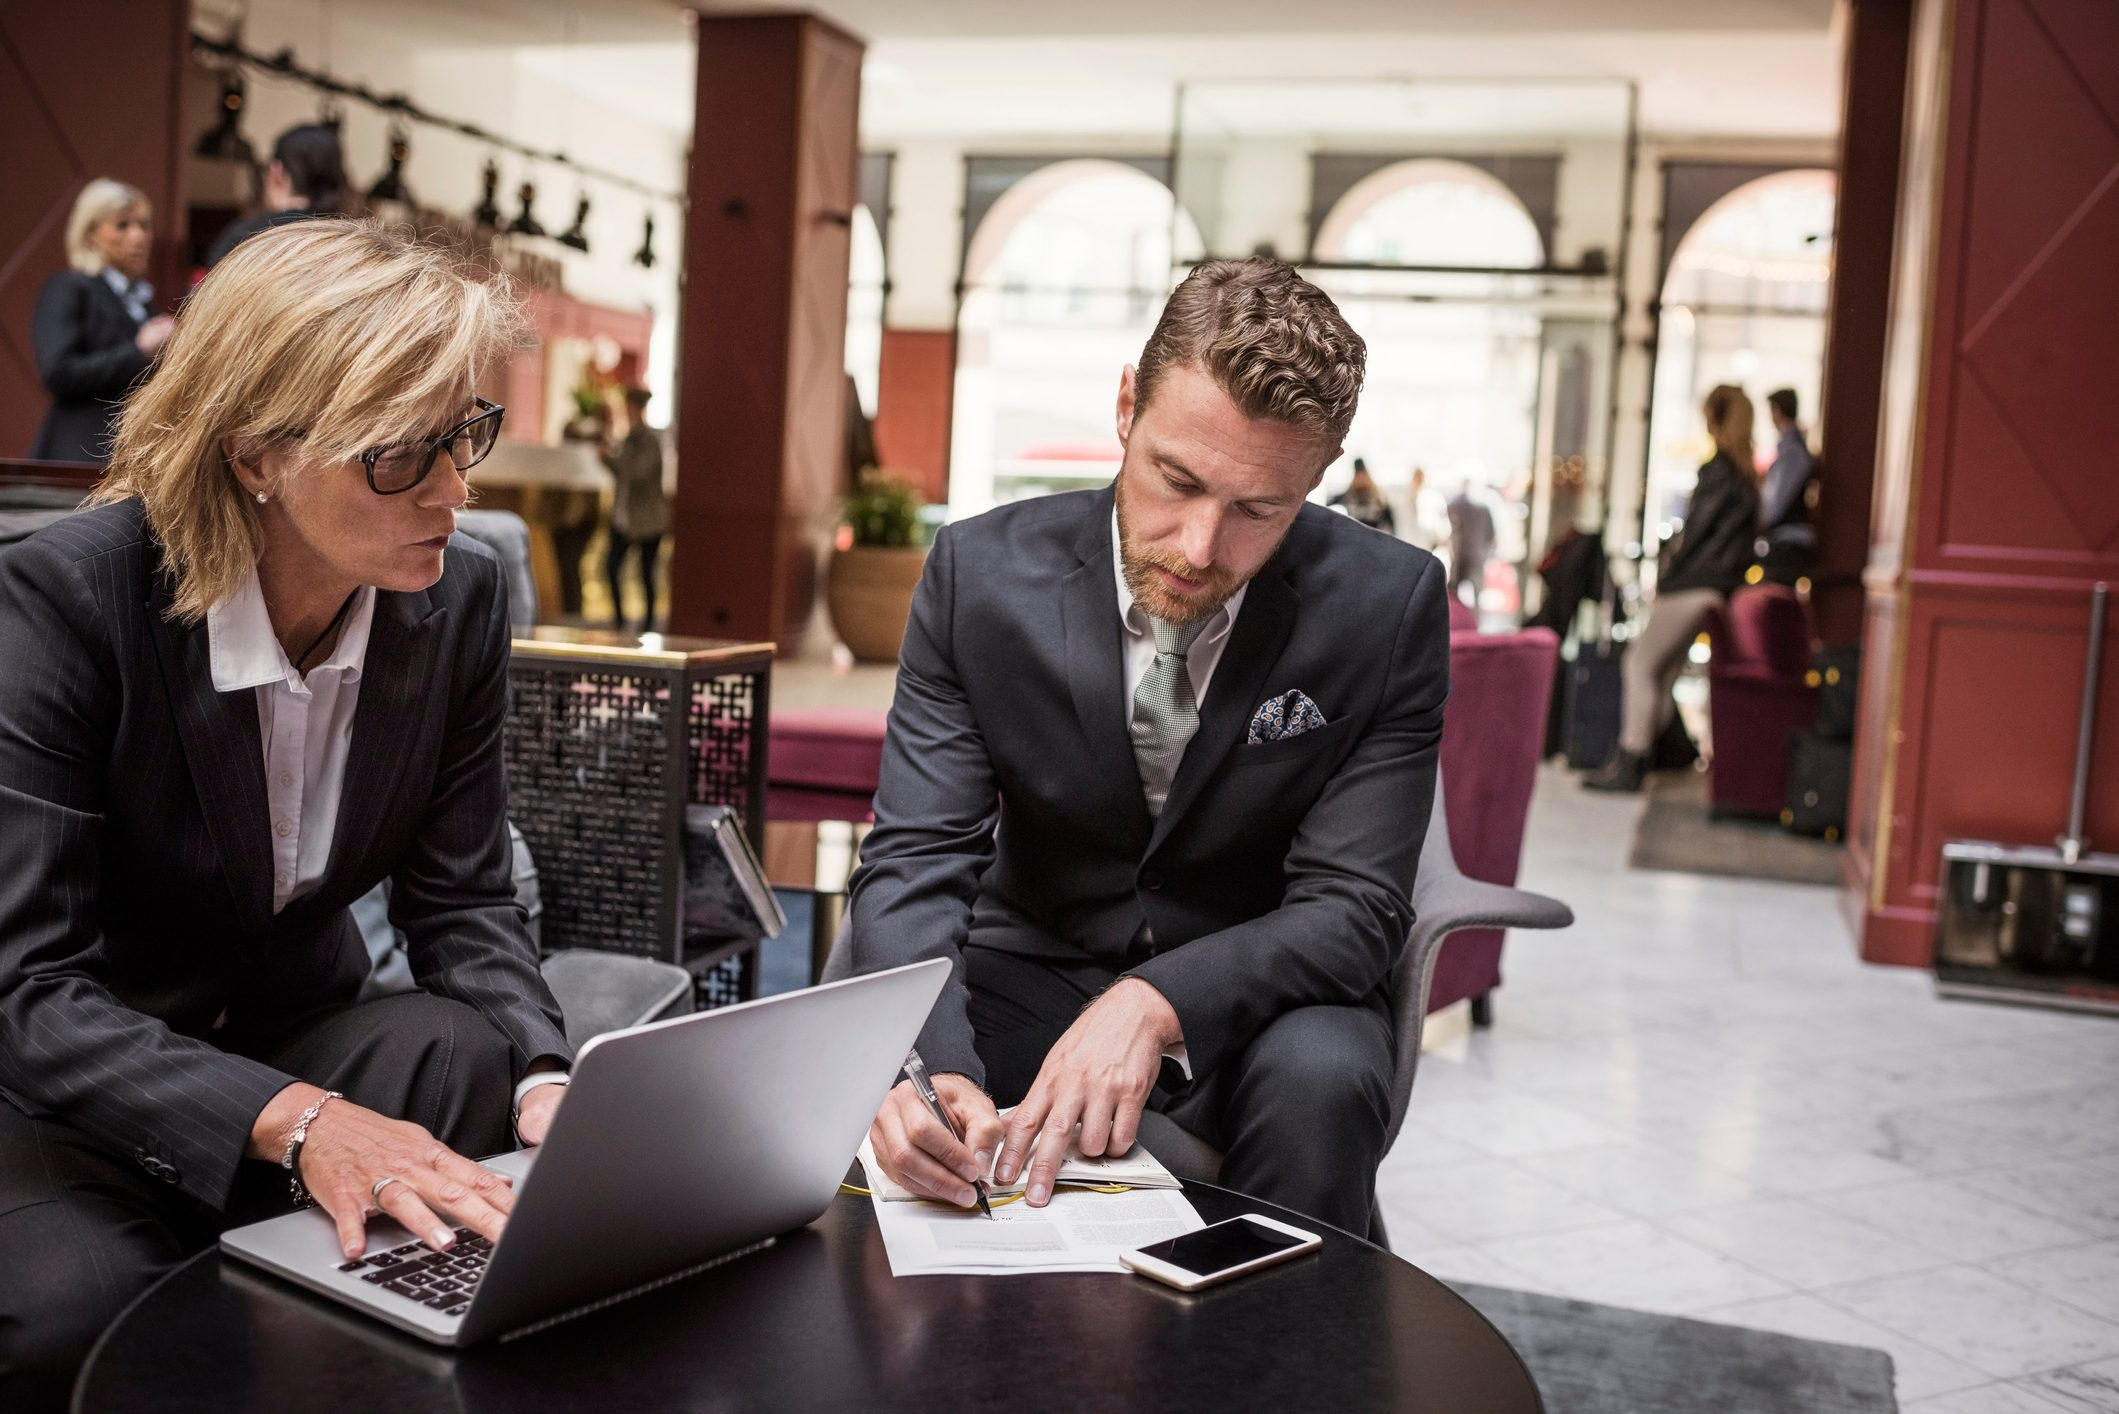 Businesswoman looking at partner signing agreement in hotel reception